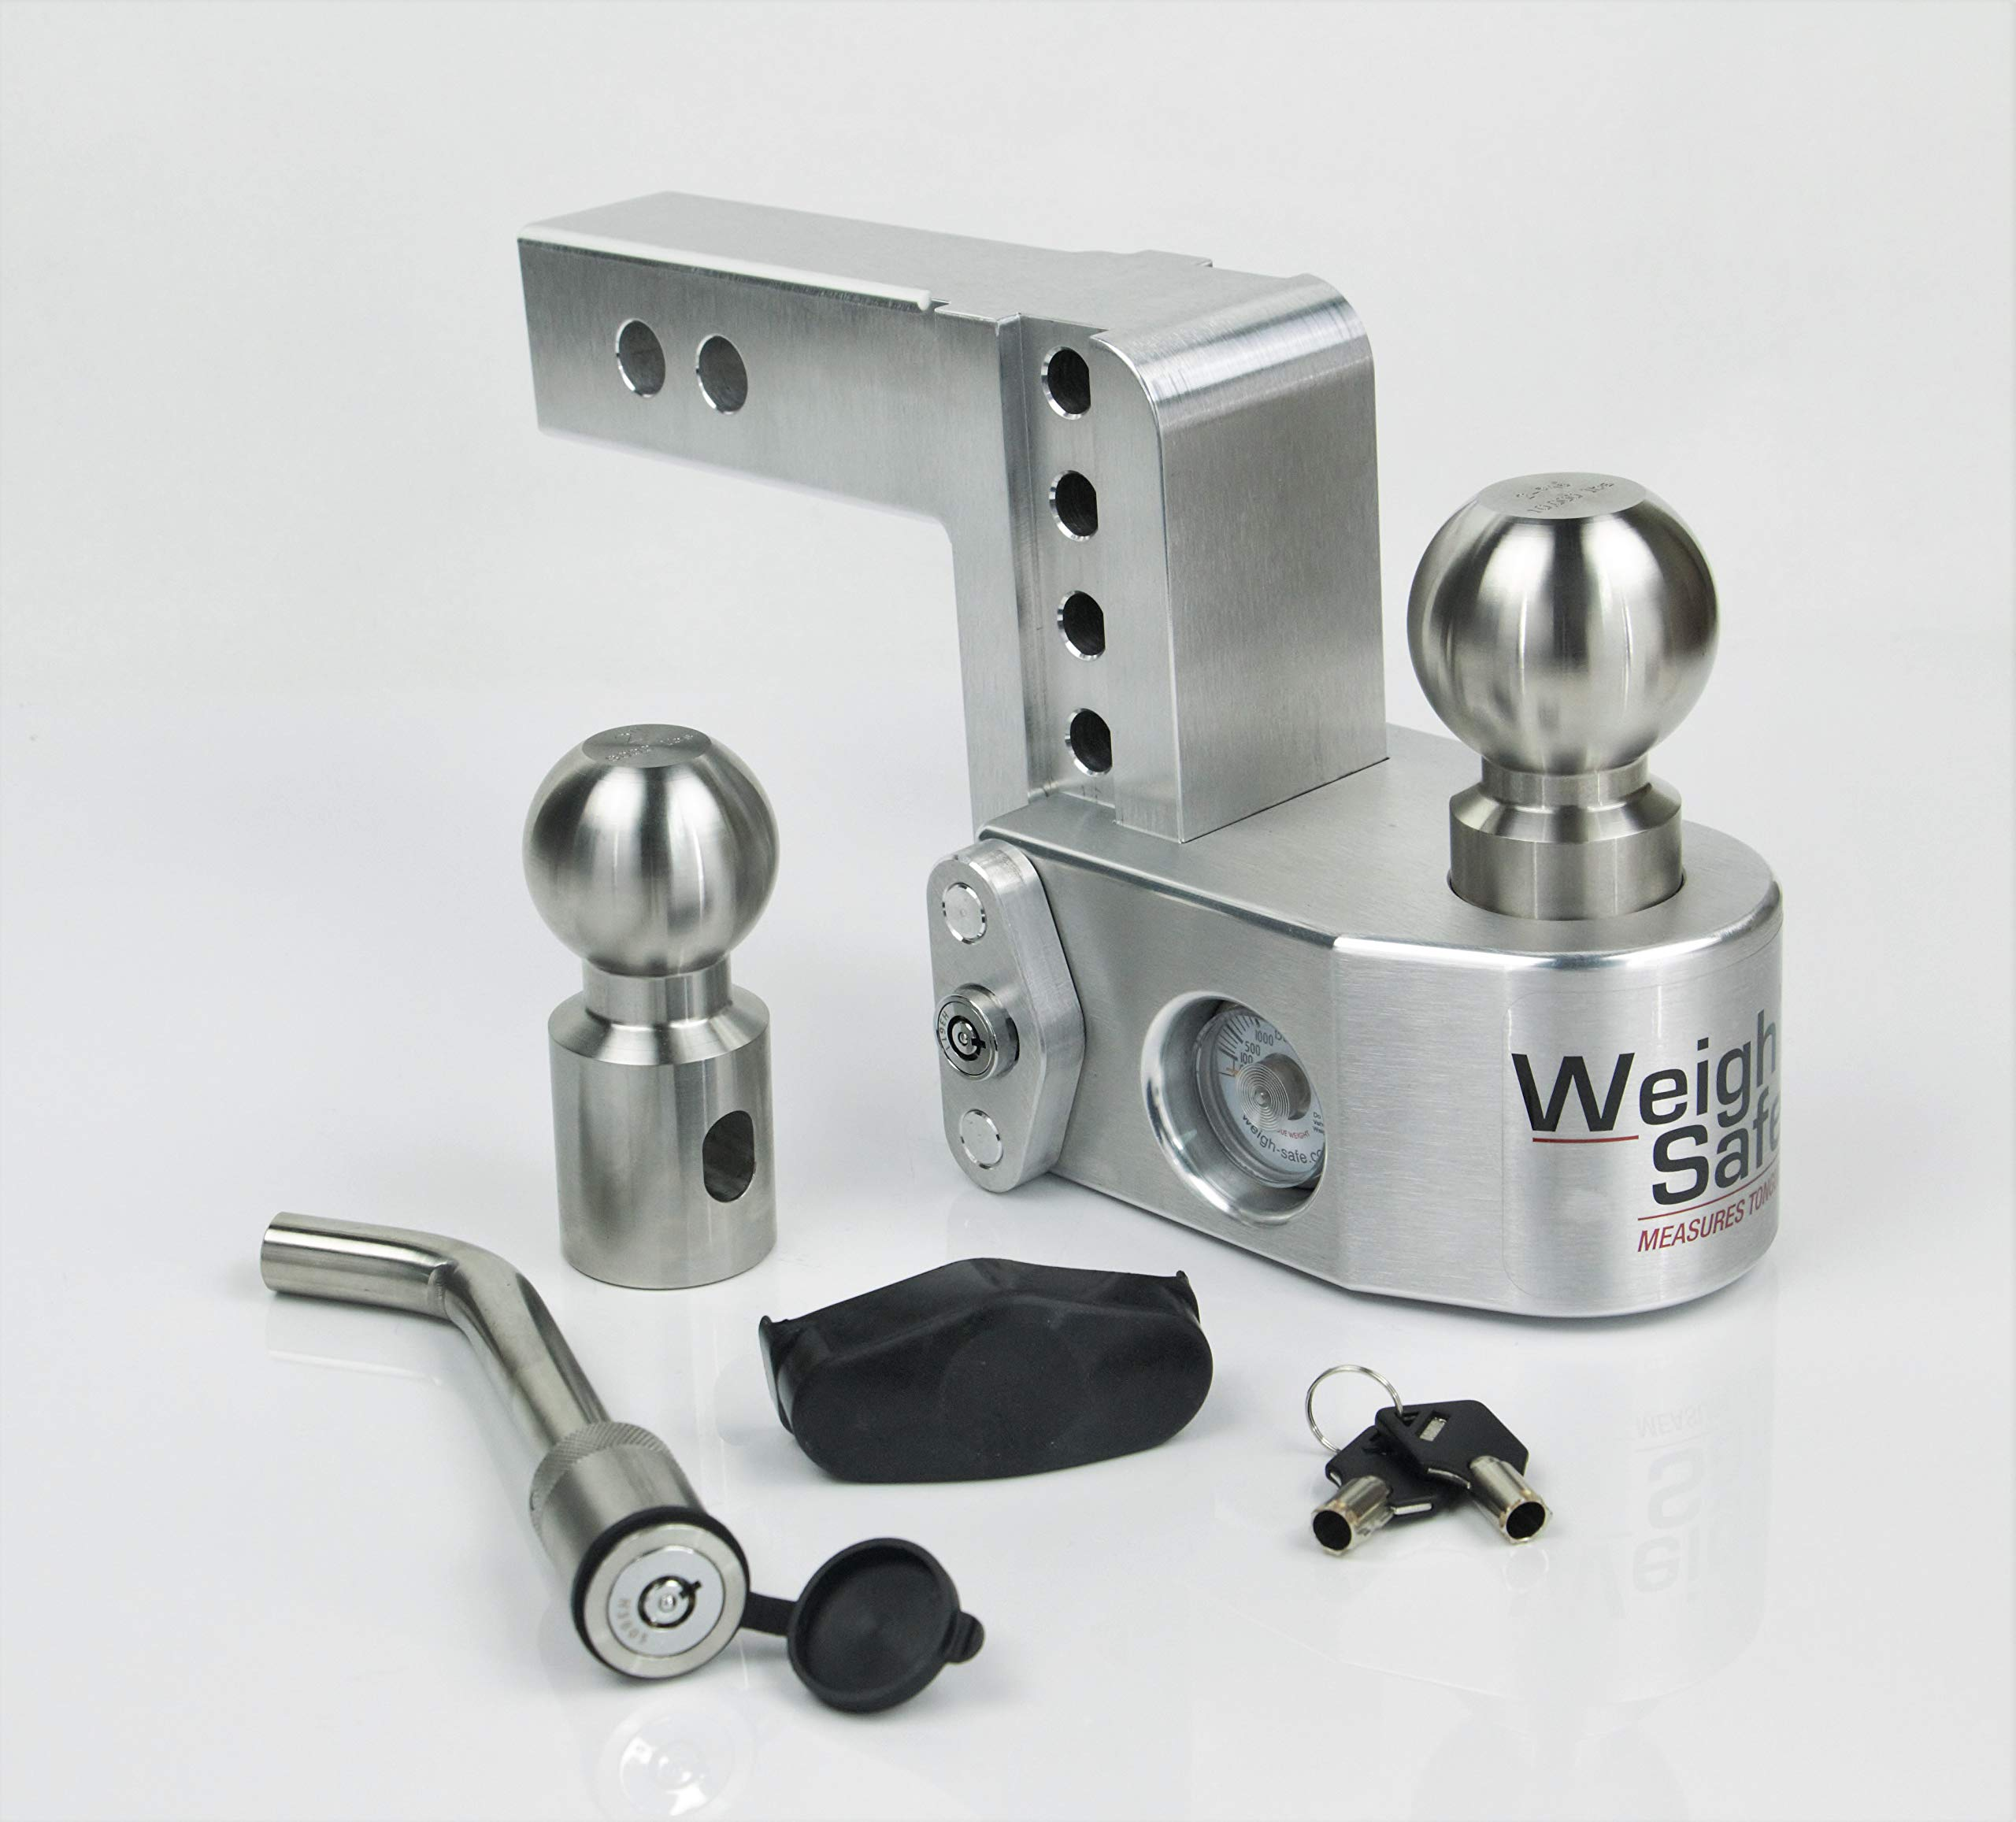 Weigh Safe WS4-2-KA, 4'' Drop Hitch w/ 2'' Shank/Shaft - Adjustable Aluminum Trailer Hitch & Ball Mount w/Built-in Scale, 2 Stainless Steel Balls (2'' & 2-5/16'') Keyed Alike Key Lock and Hitch Pin